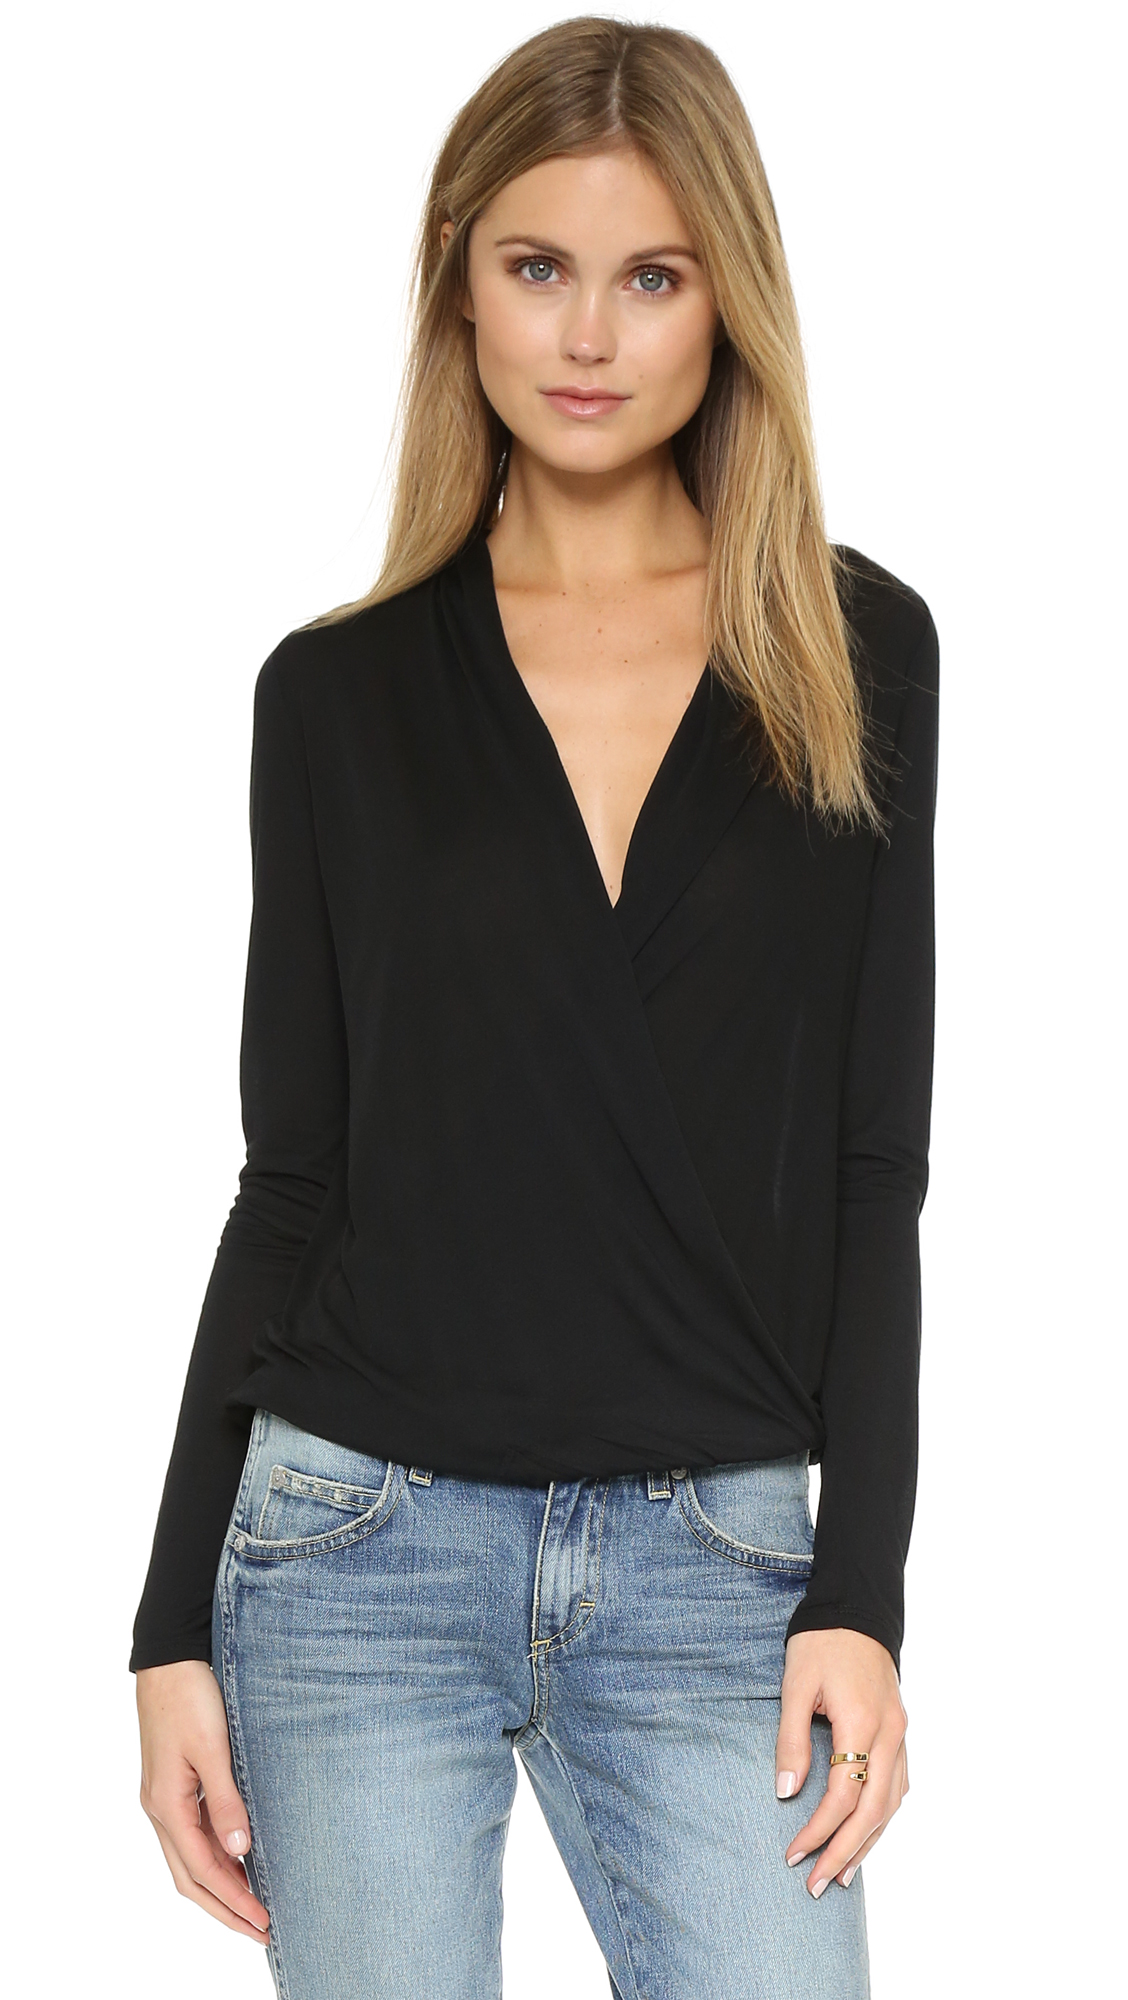 Lanston Surplice Long Sleeve Top - Black at Shopbop